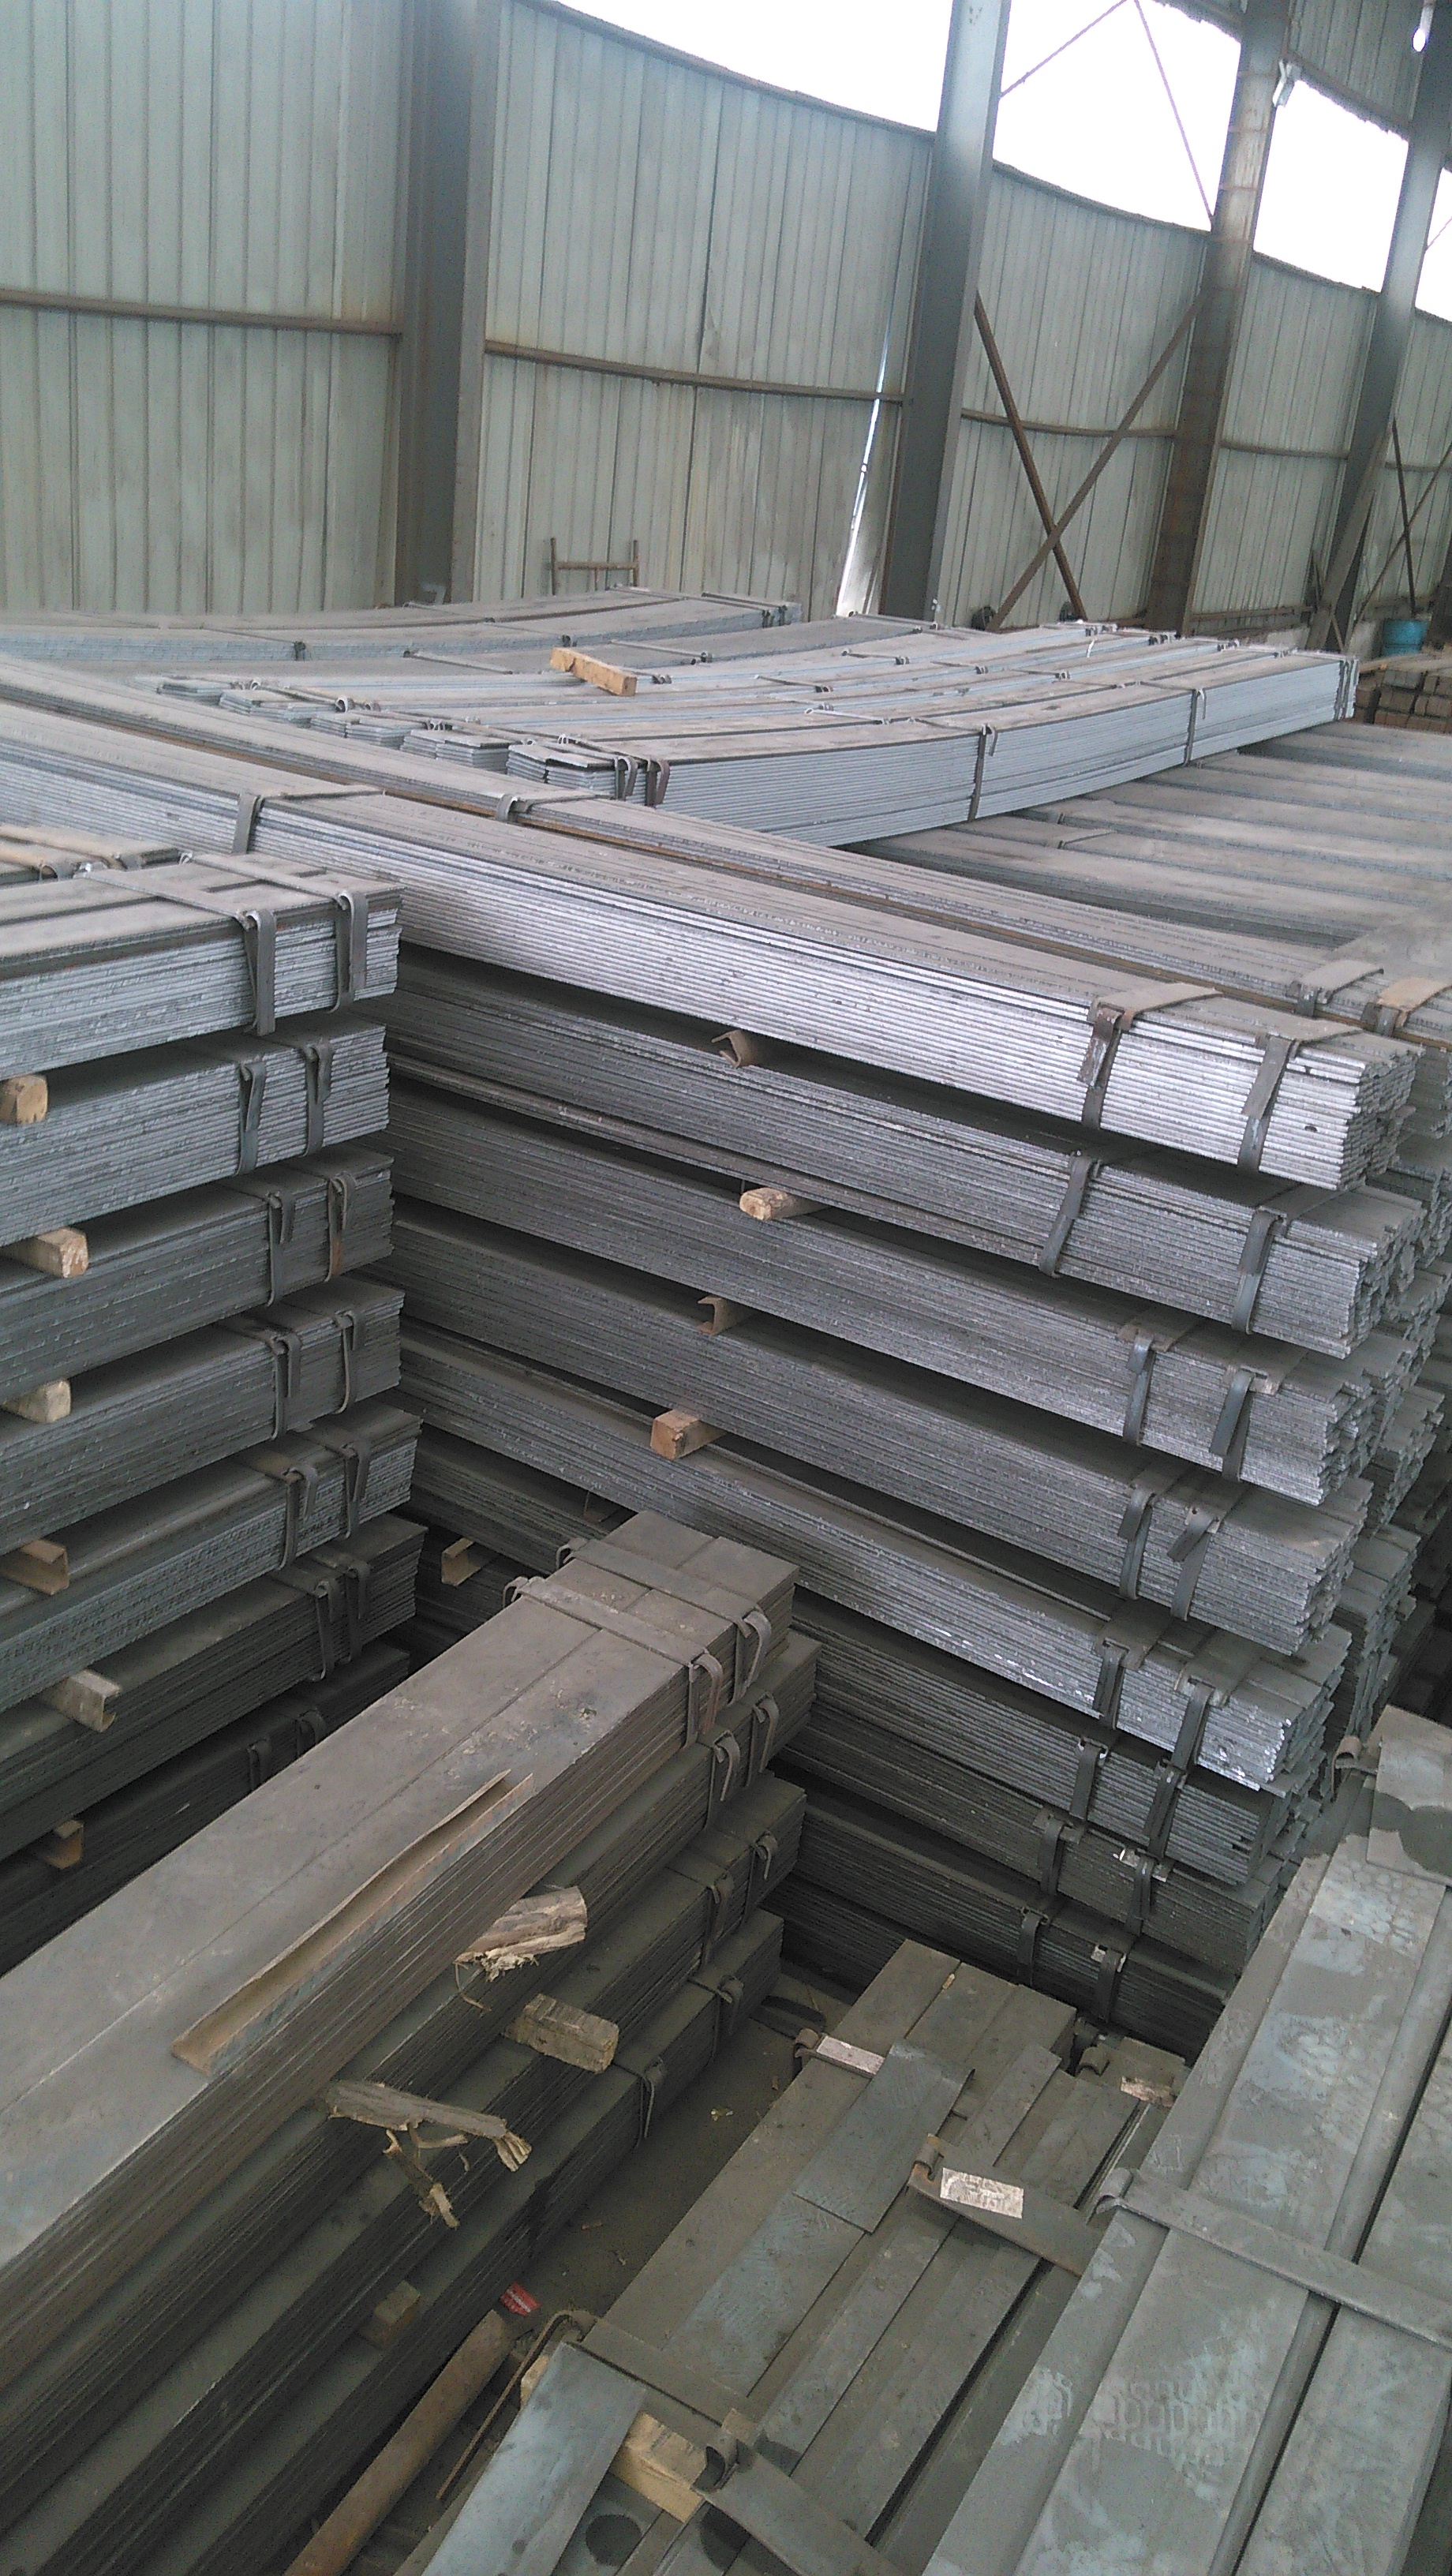 Prime Flat Bars Slitted with Variety Size and Thichness